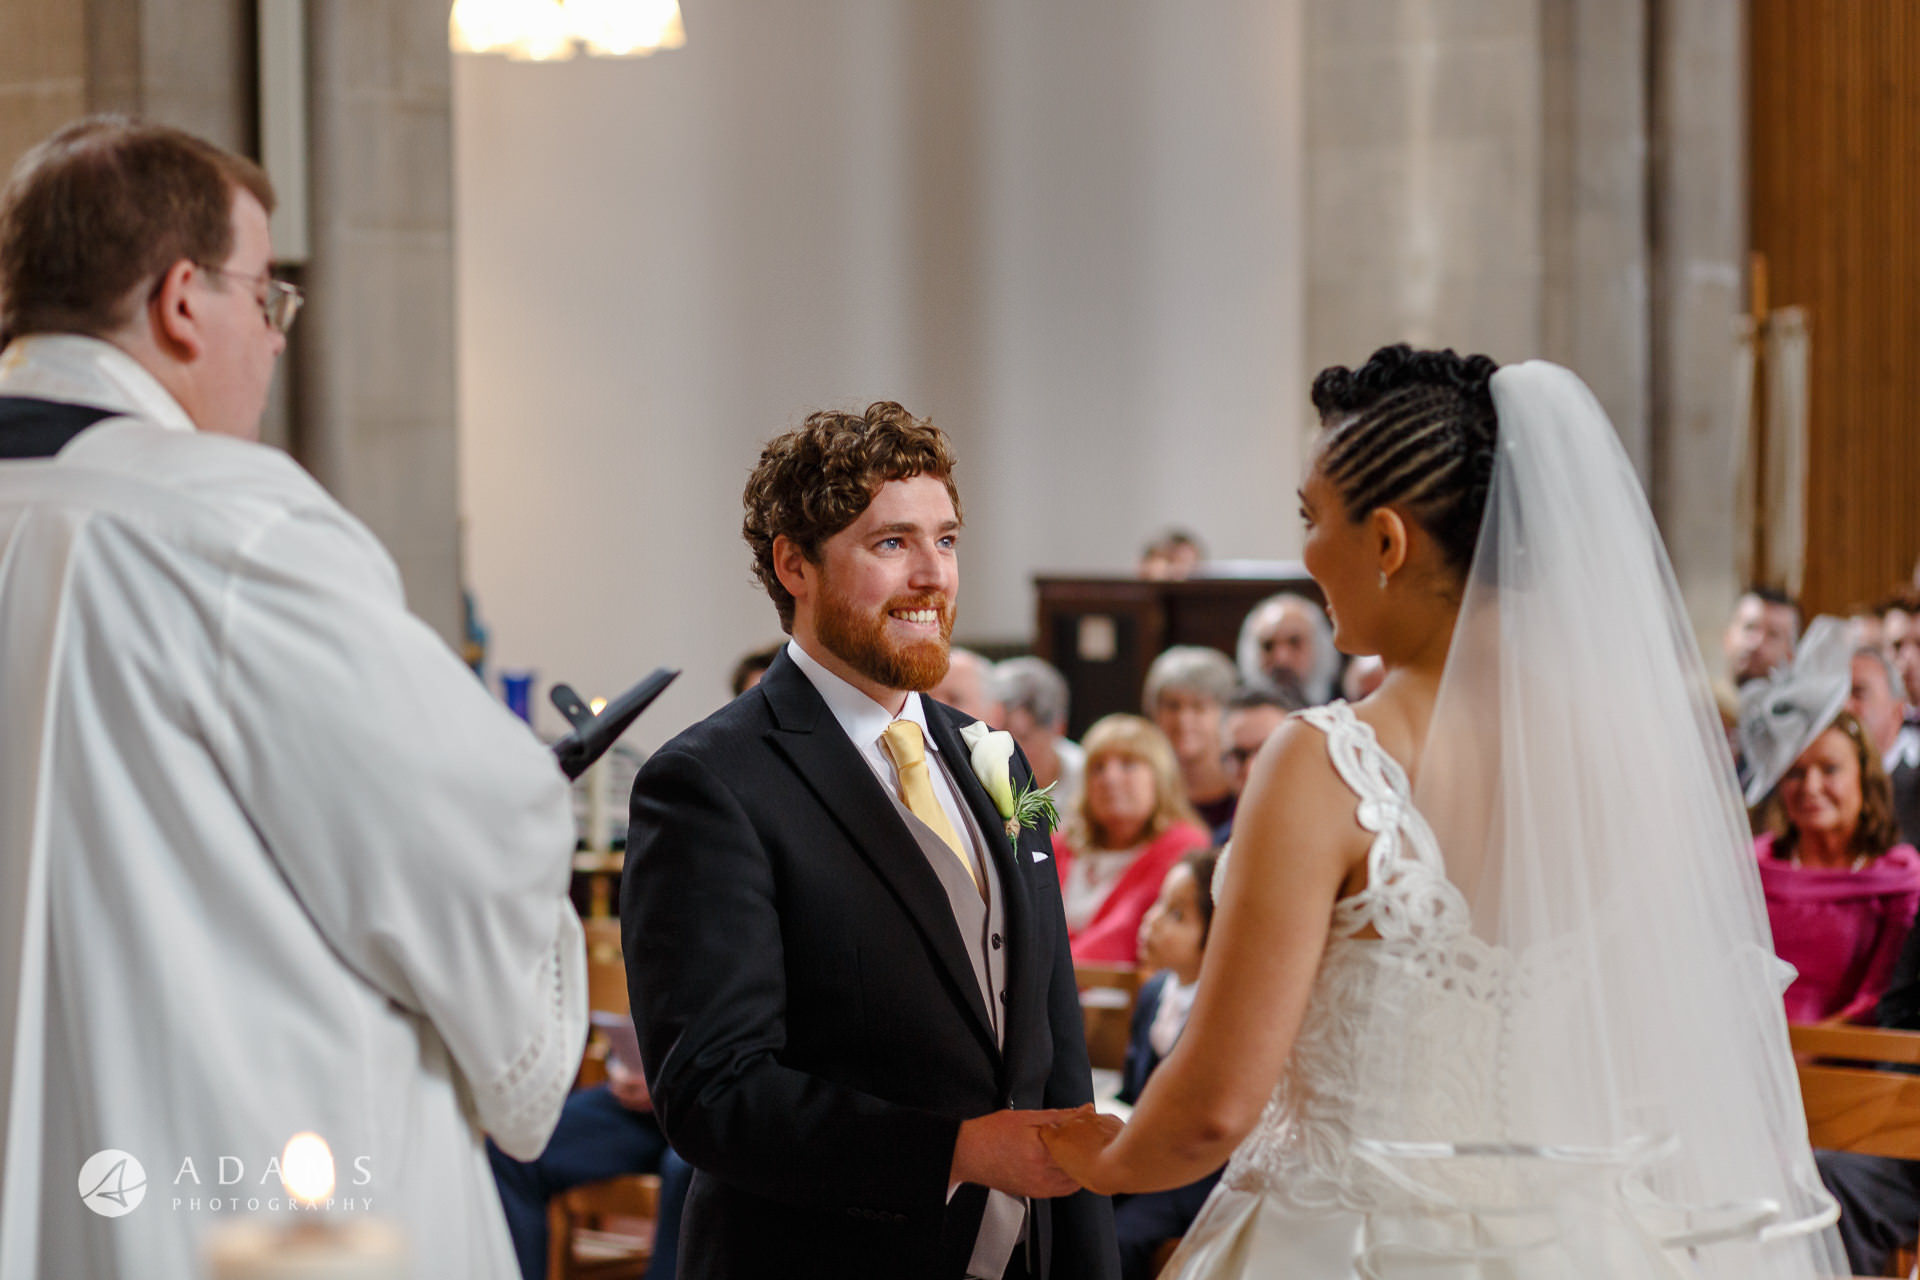 groom is looking into the brides eyes during the wedding ceremony at st mary of eton church hackney wick